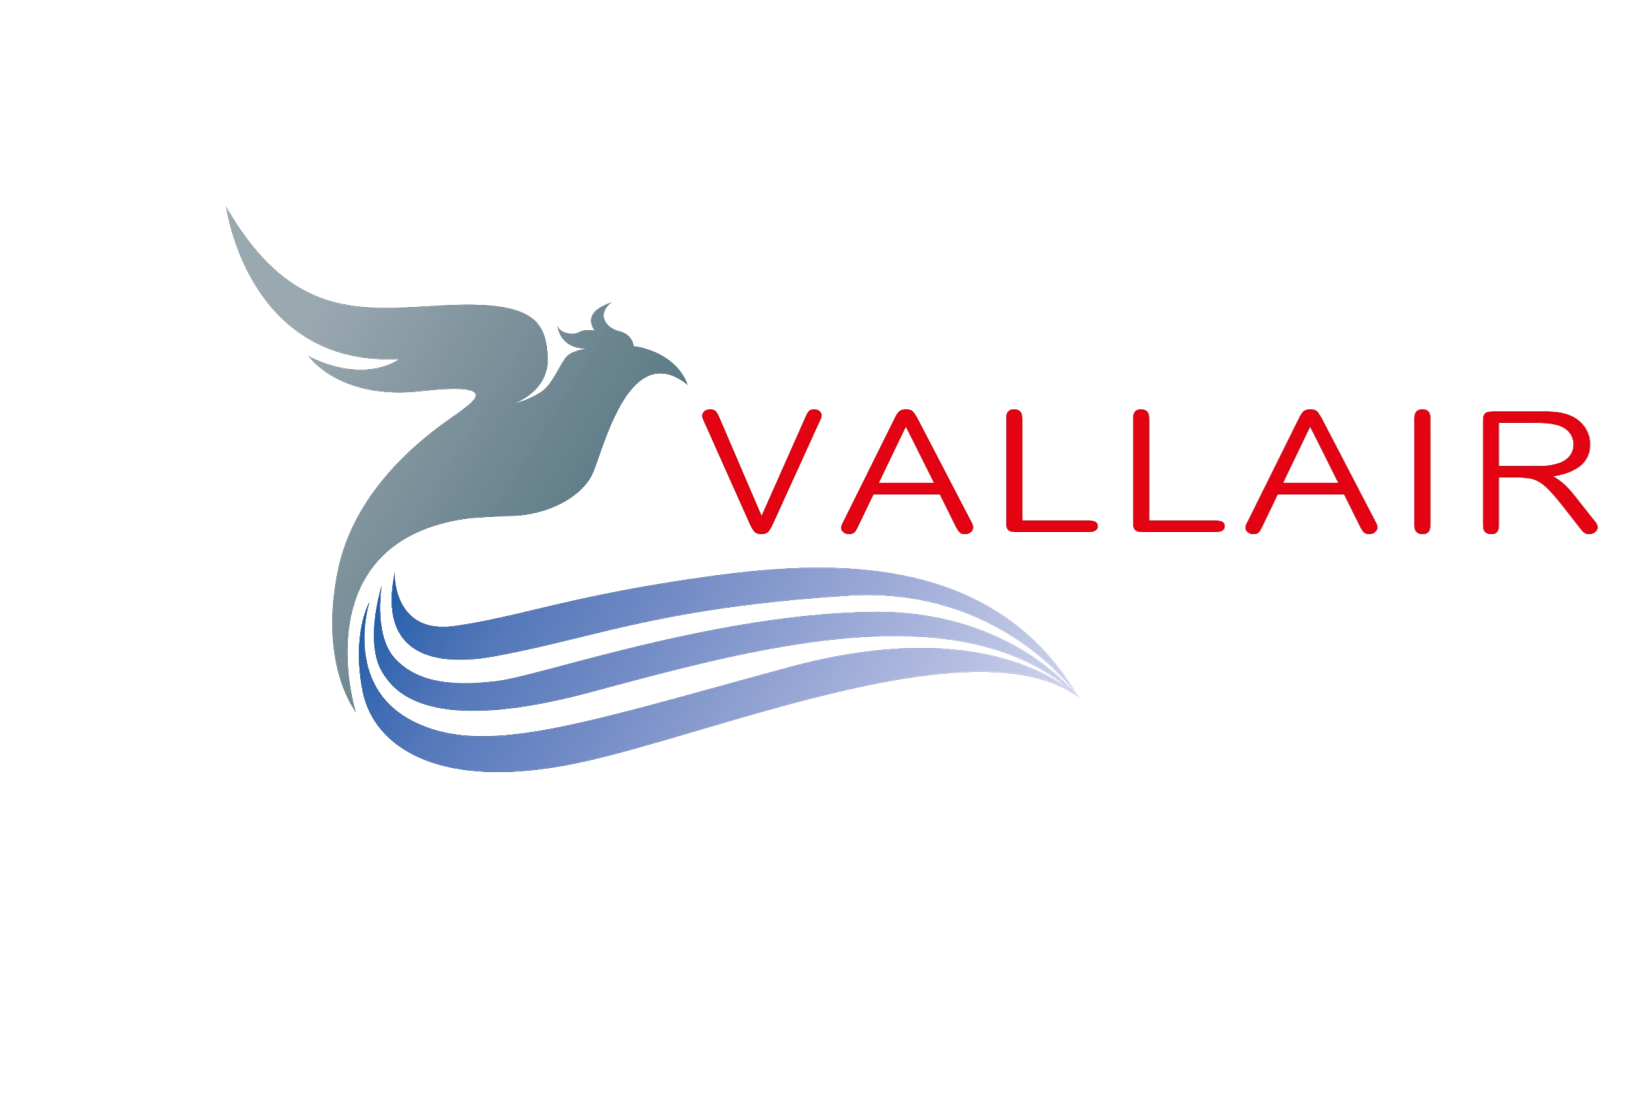 Vallair